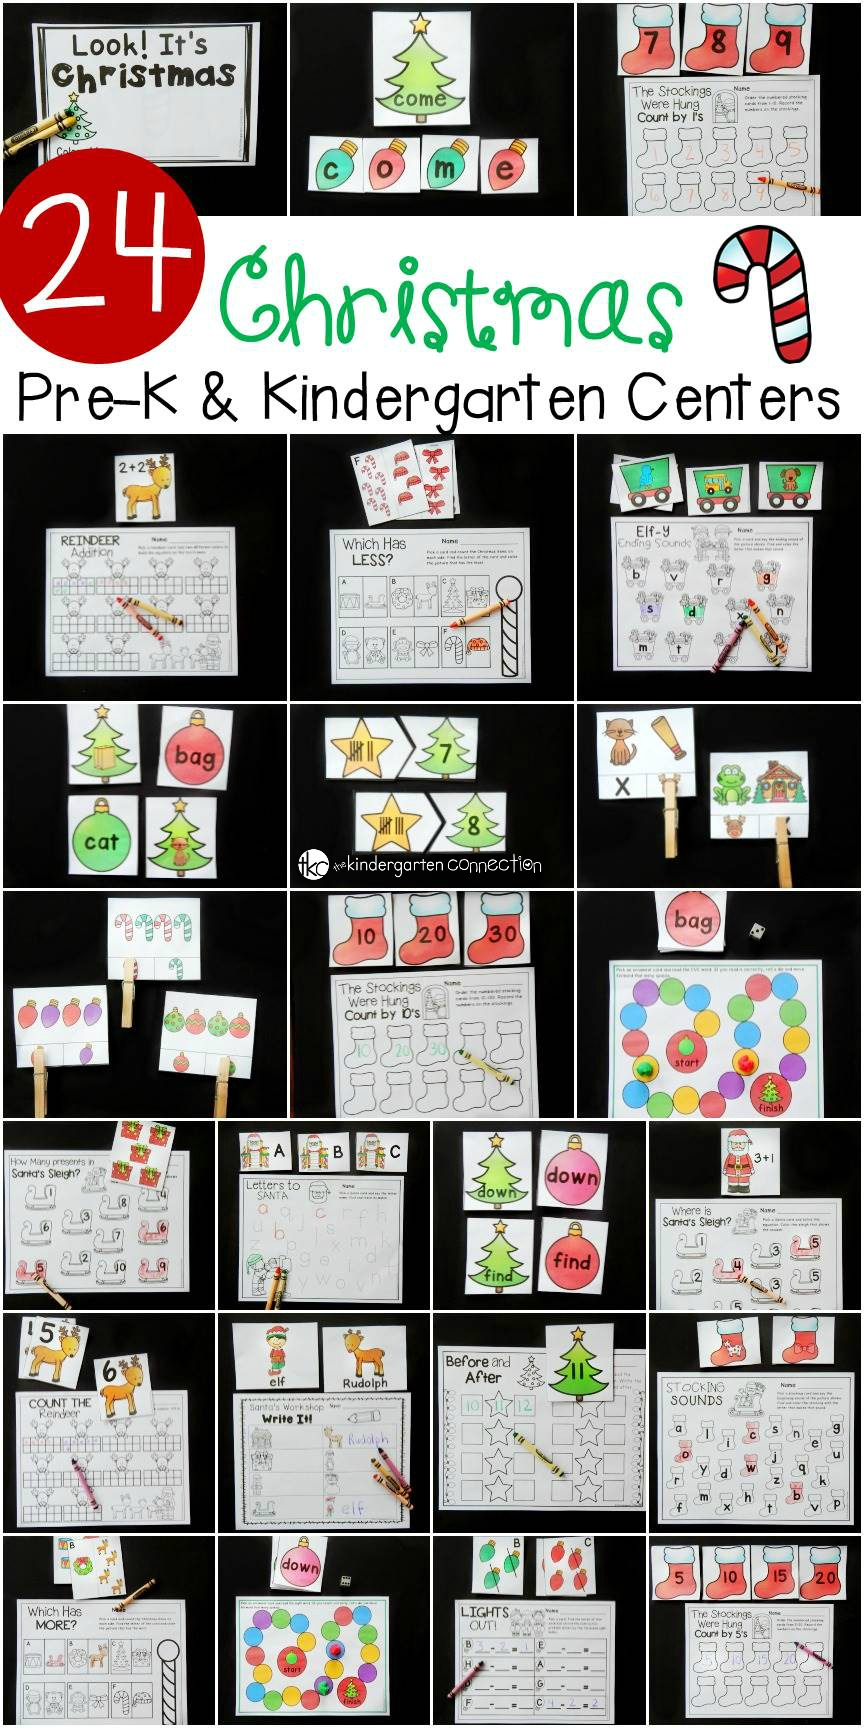 These Christmas Math and Literacy Centers for pre-k and kindergarten are so fun for learning letters, sight words, addition, subtraction, and more!